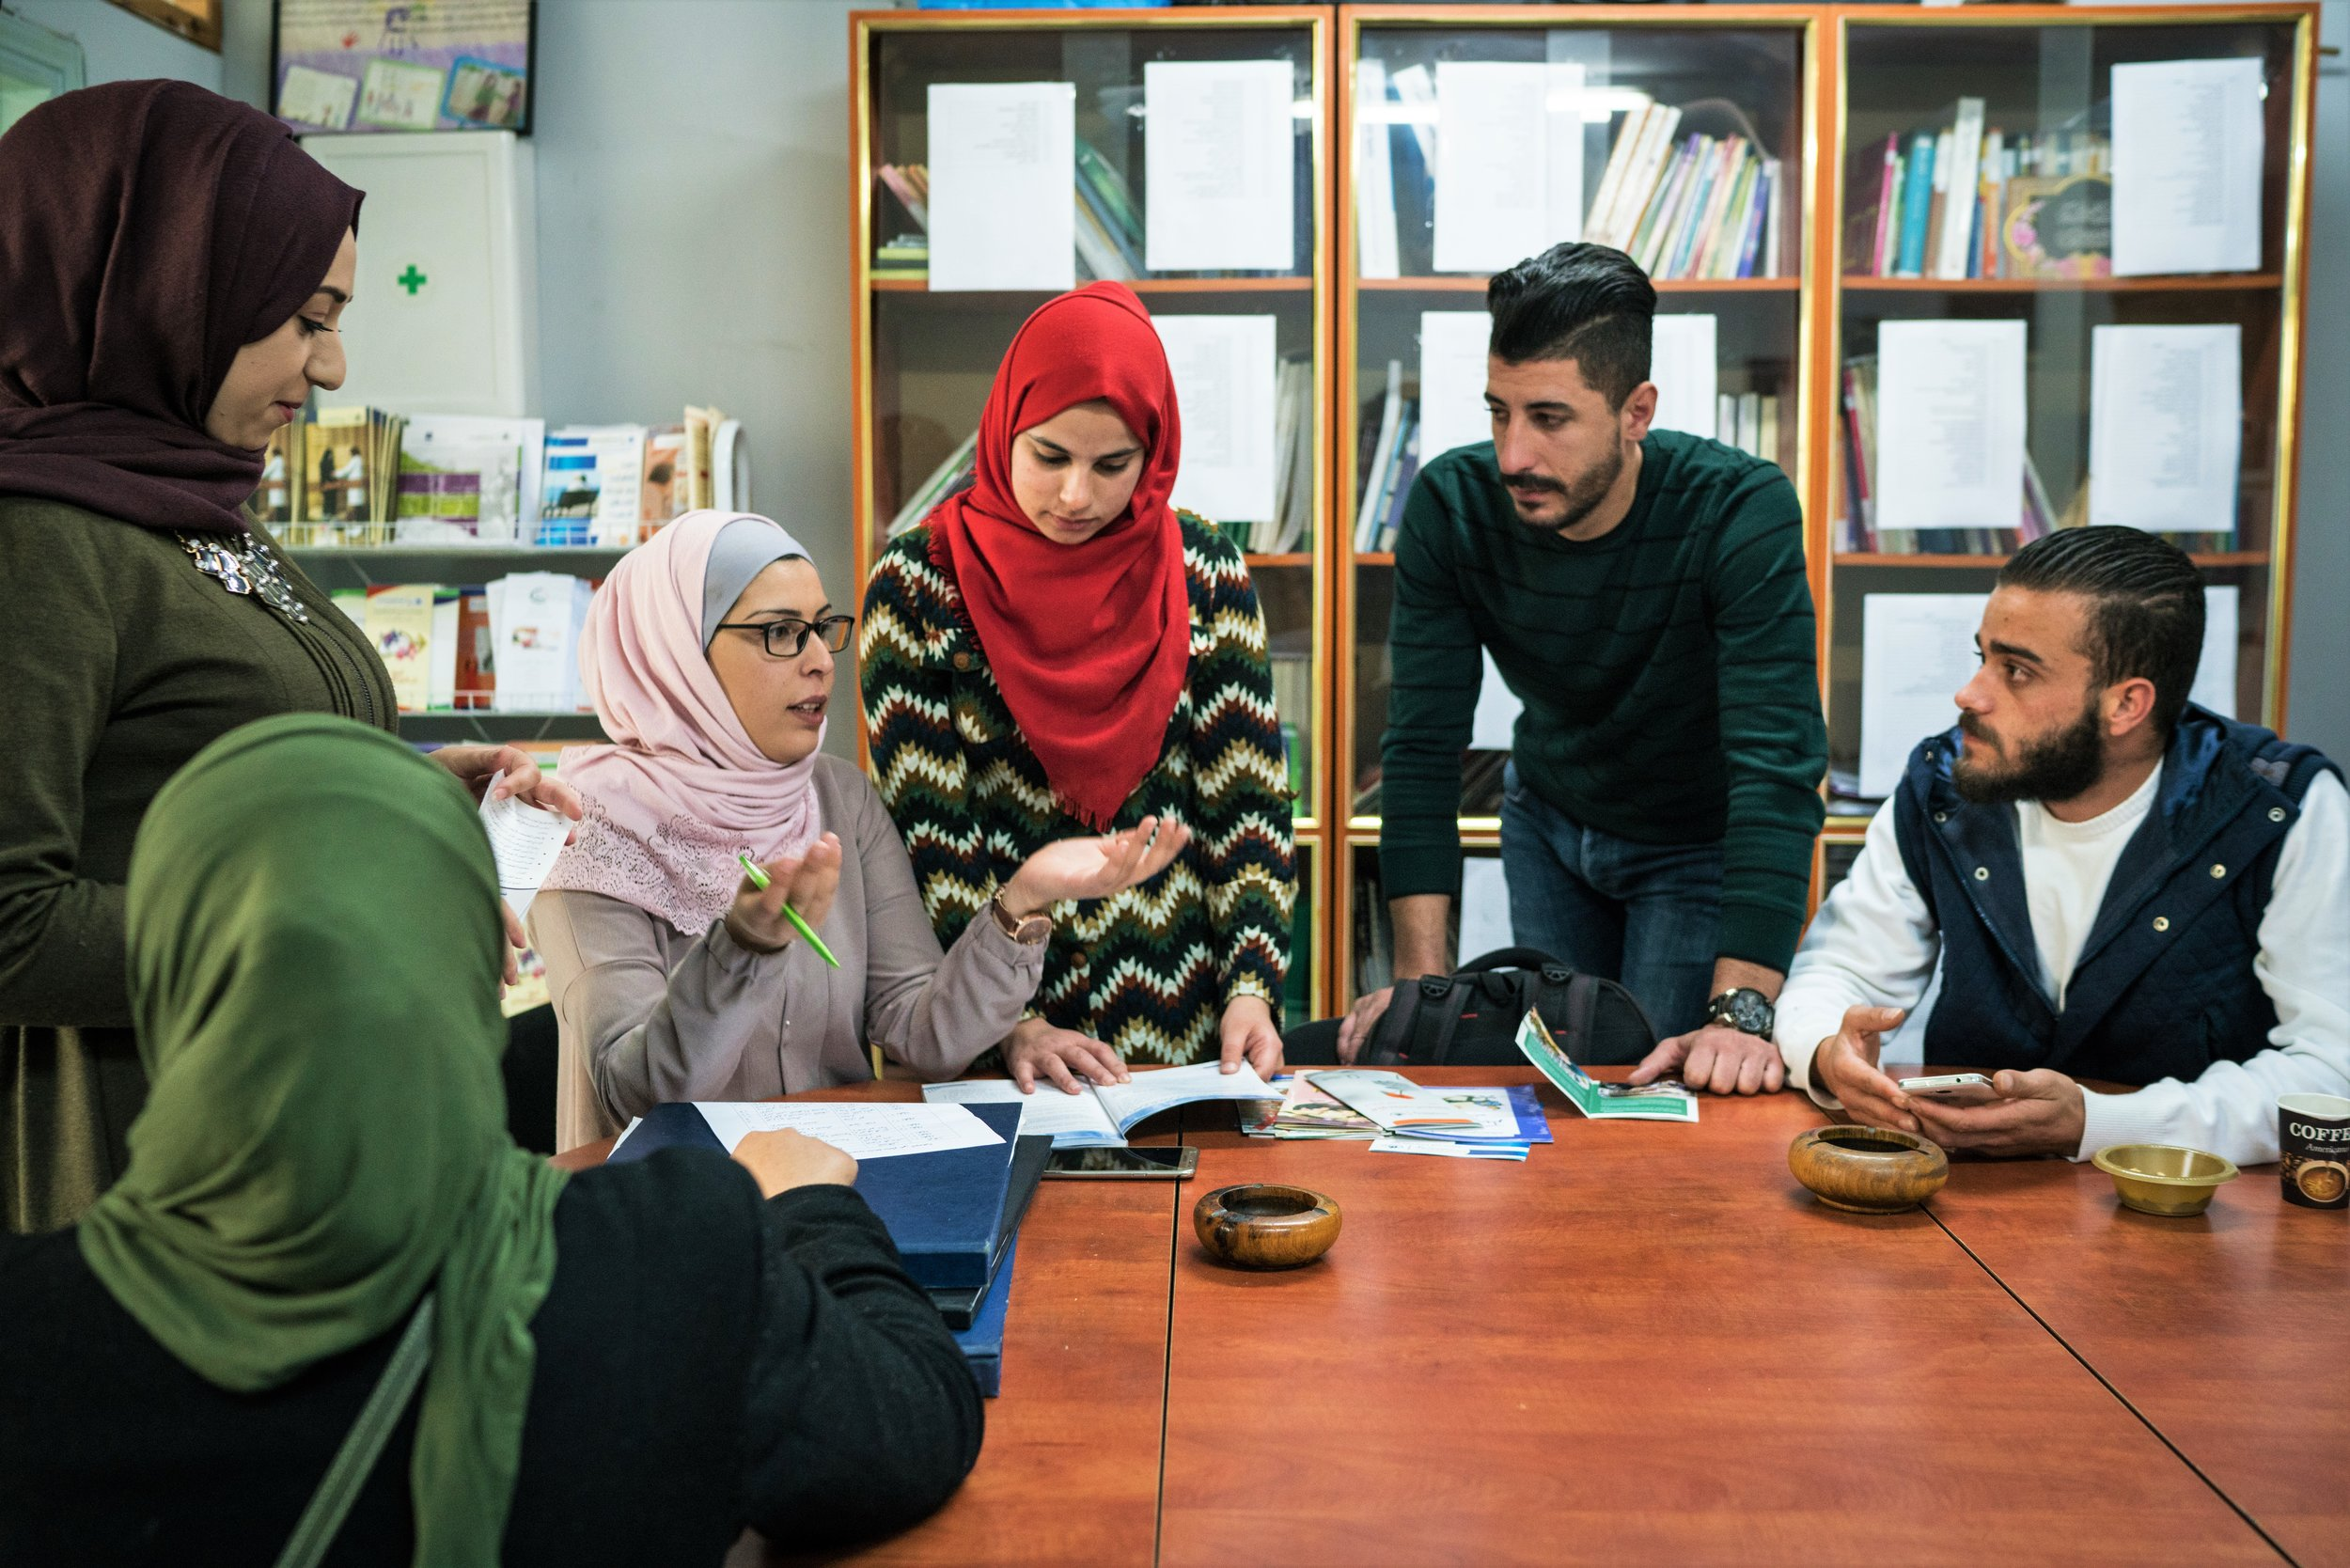 Mahmoud (furthest right) working with other volunteers to plan activity